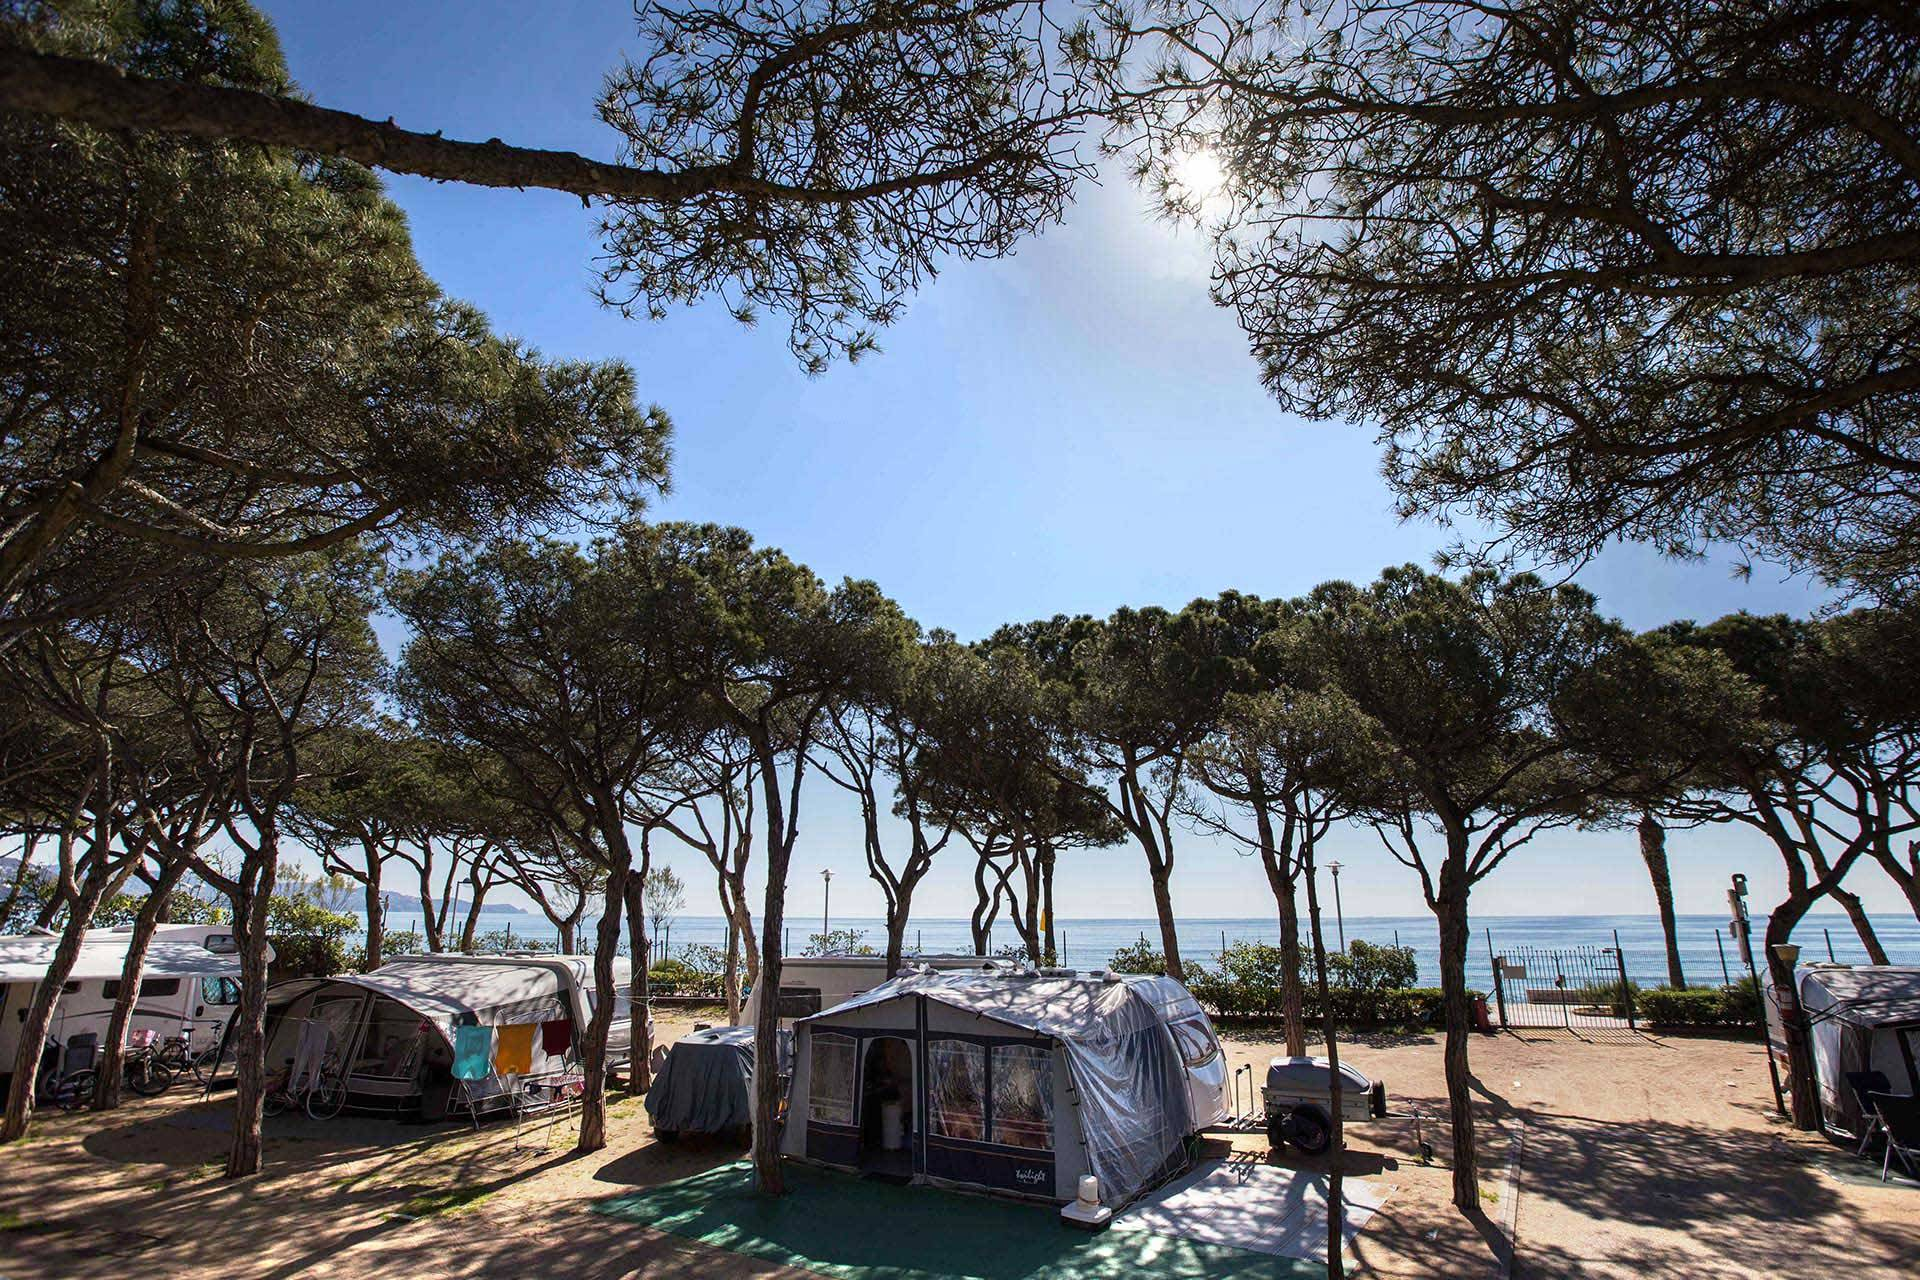 be55c-tenda-camping-mar-costa-brava-baixa.jpg